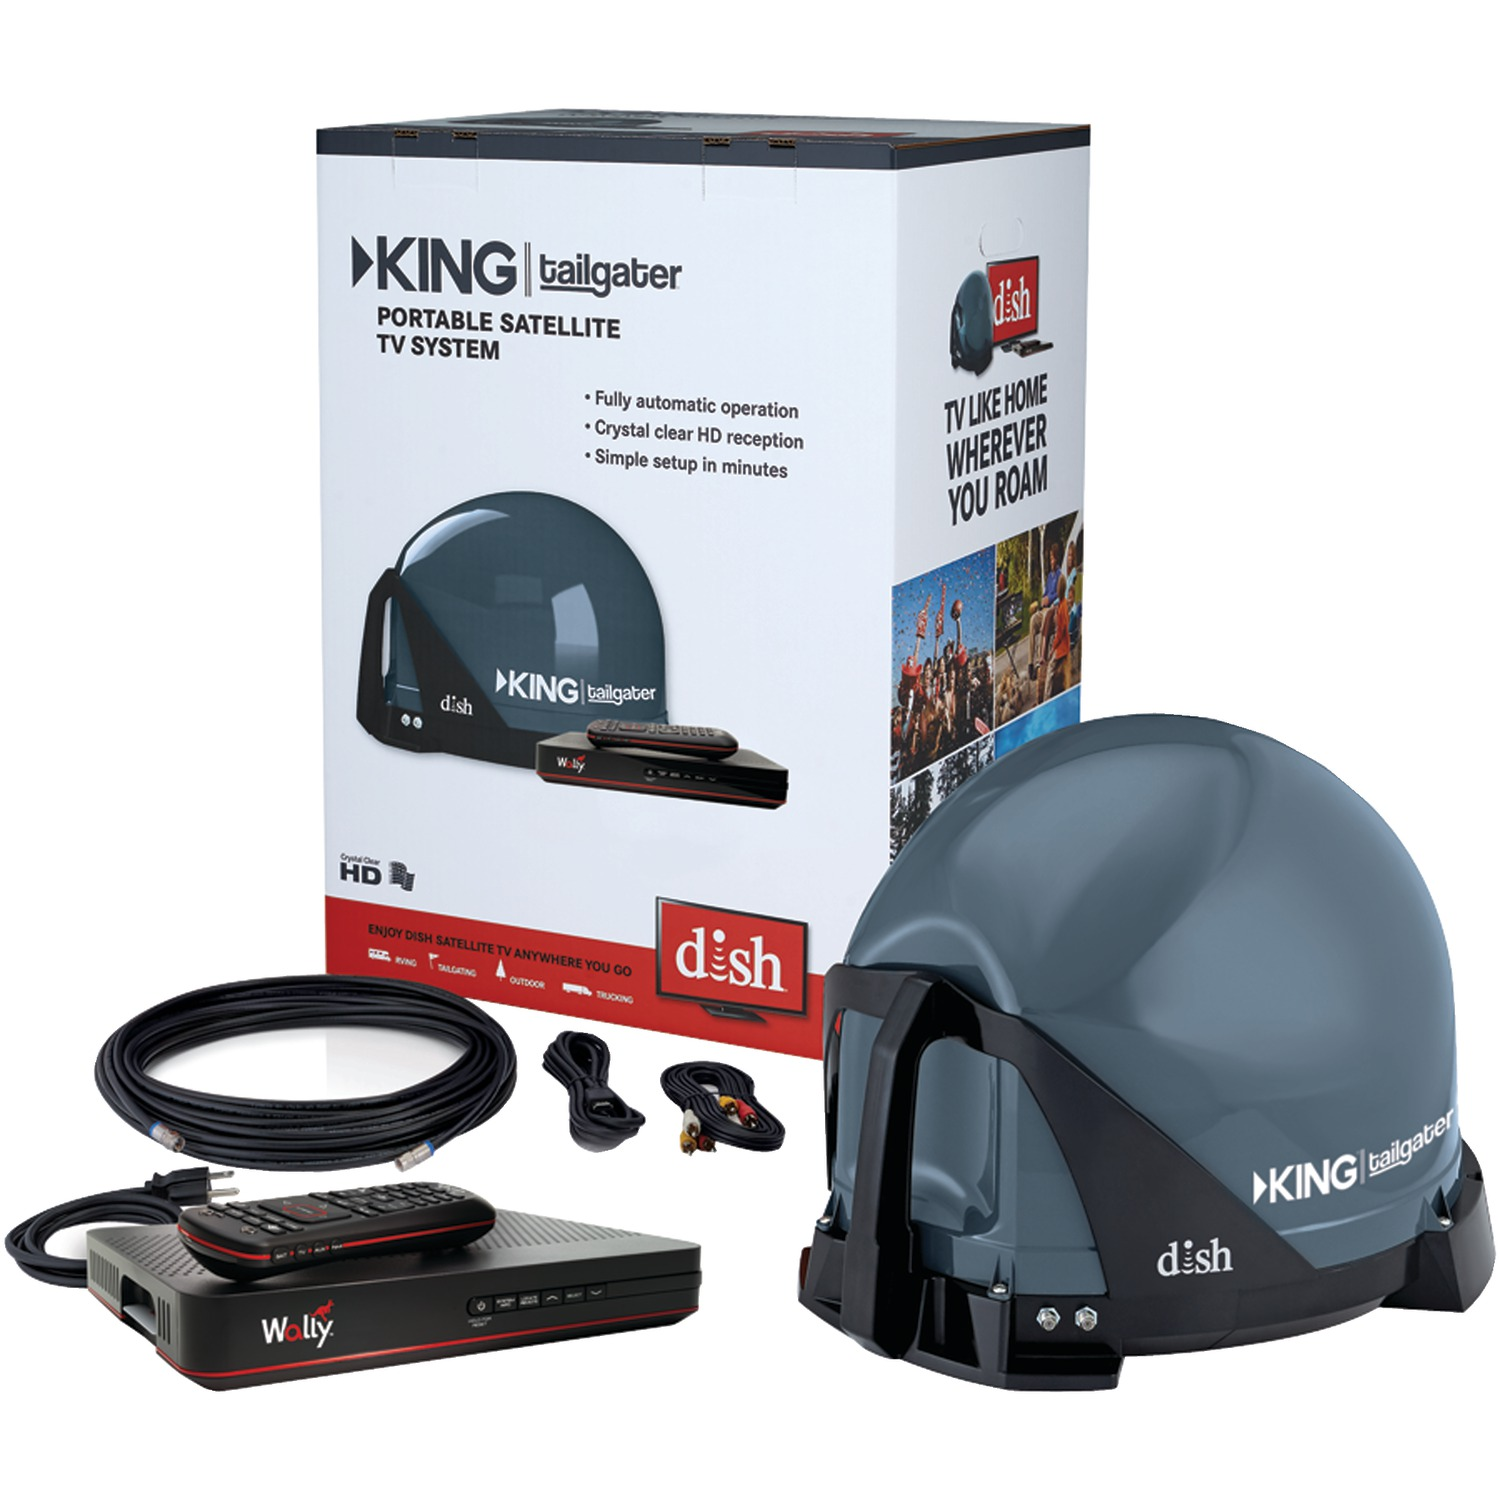 KING VQ4550 Tailgater Bundle - Portable Satellite TV Antenna with DISH Wally HD Receiver for RV, Tailgating, Camping, Outdoor